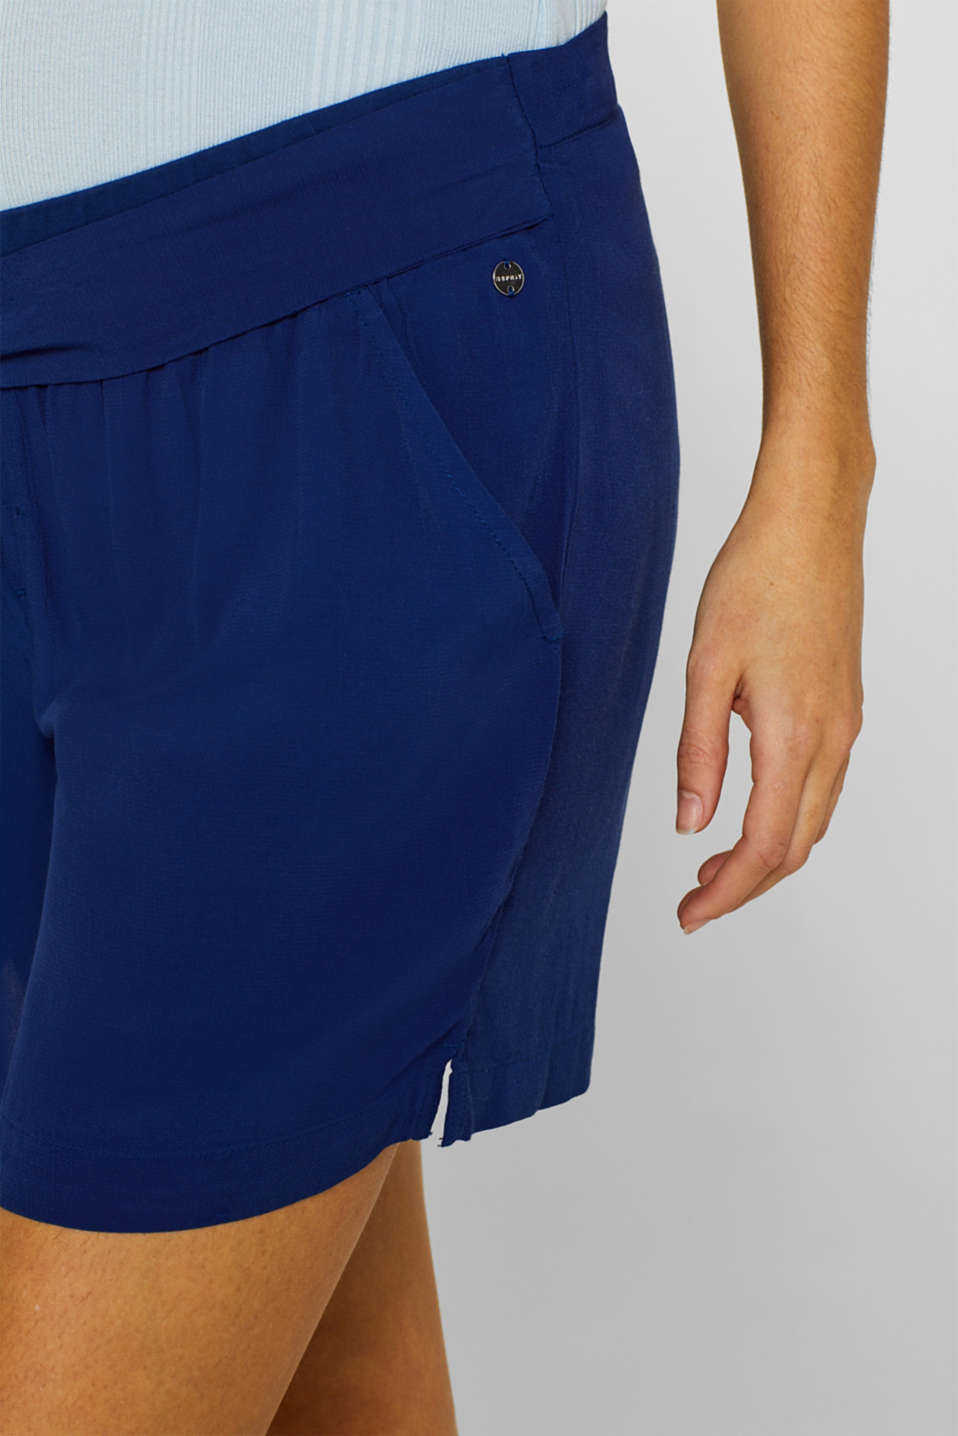 Crêpe shorts with a tie-around belt and under-bump waistband, LCDARK BLUE, detail image number 5